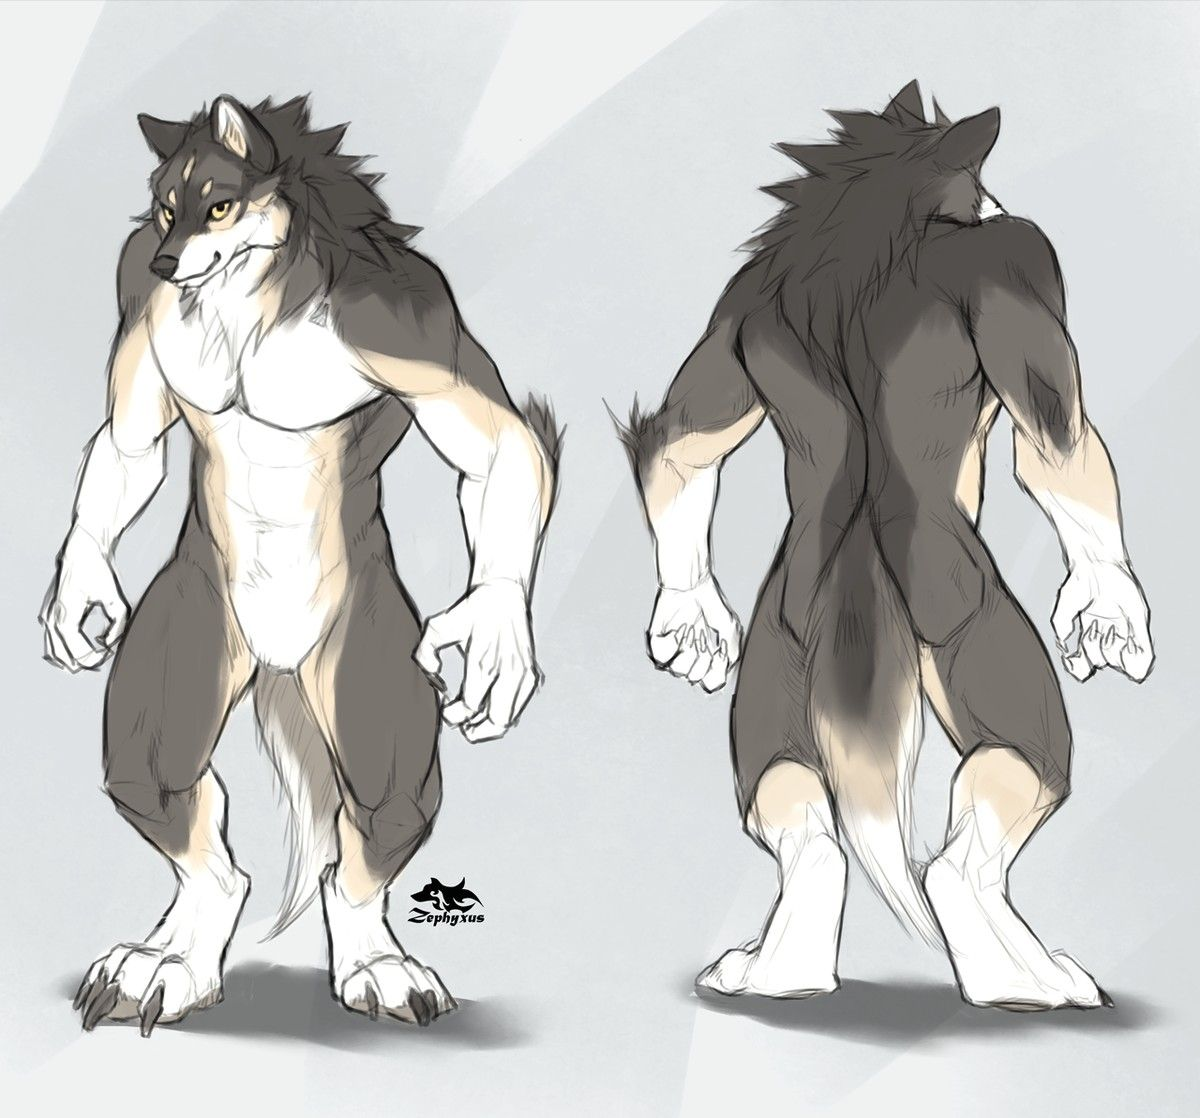 Werewolf Anthro Body Design With Images Anthro Furry Furry